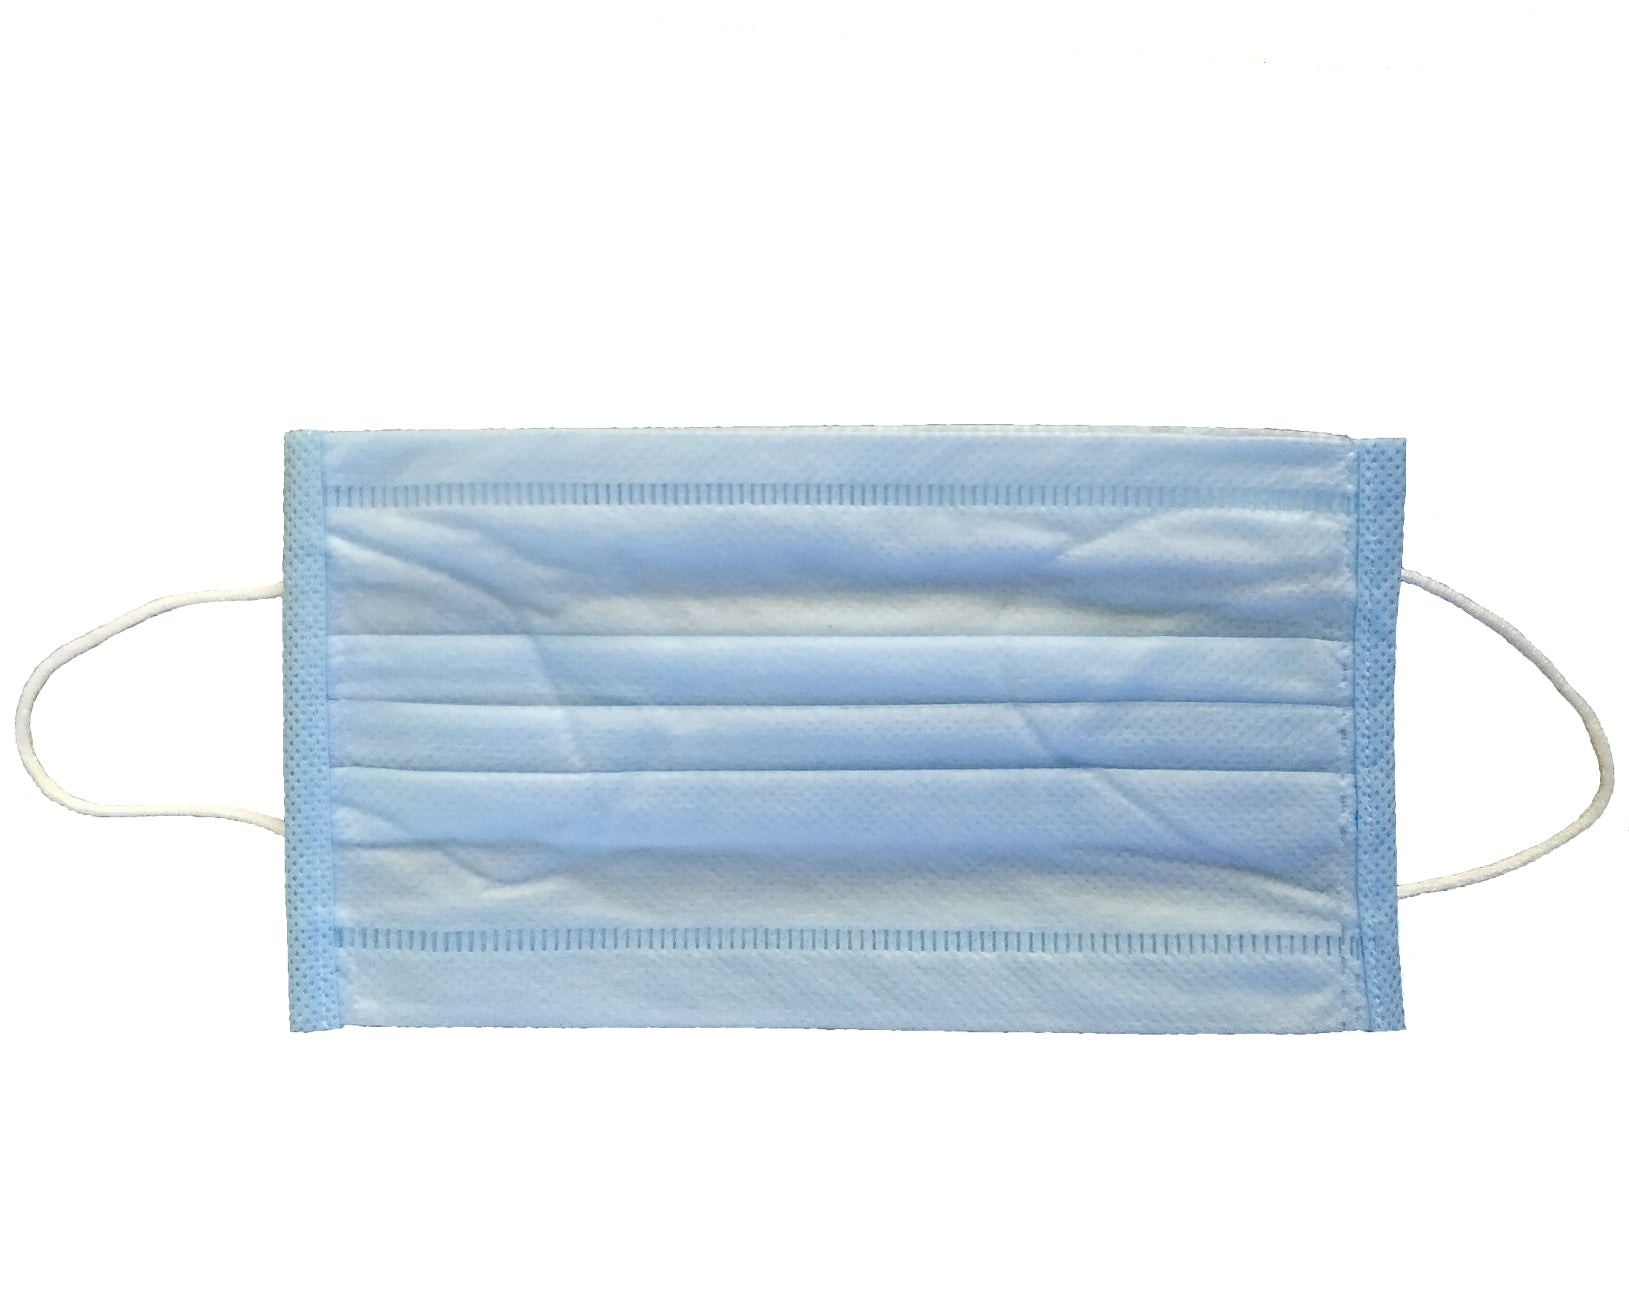 3 Ply Non-Woven Disposable Face Mask (Pack of 250 pieces)